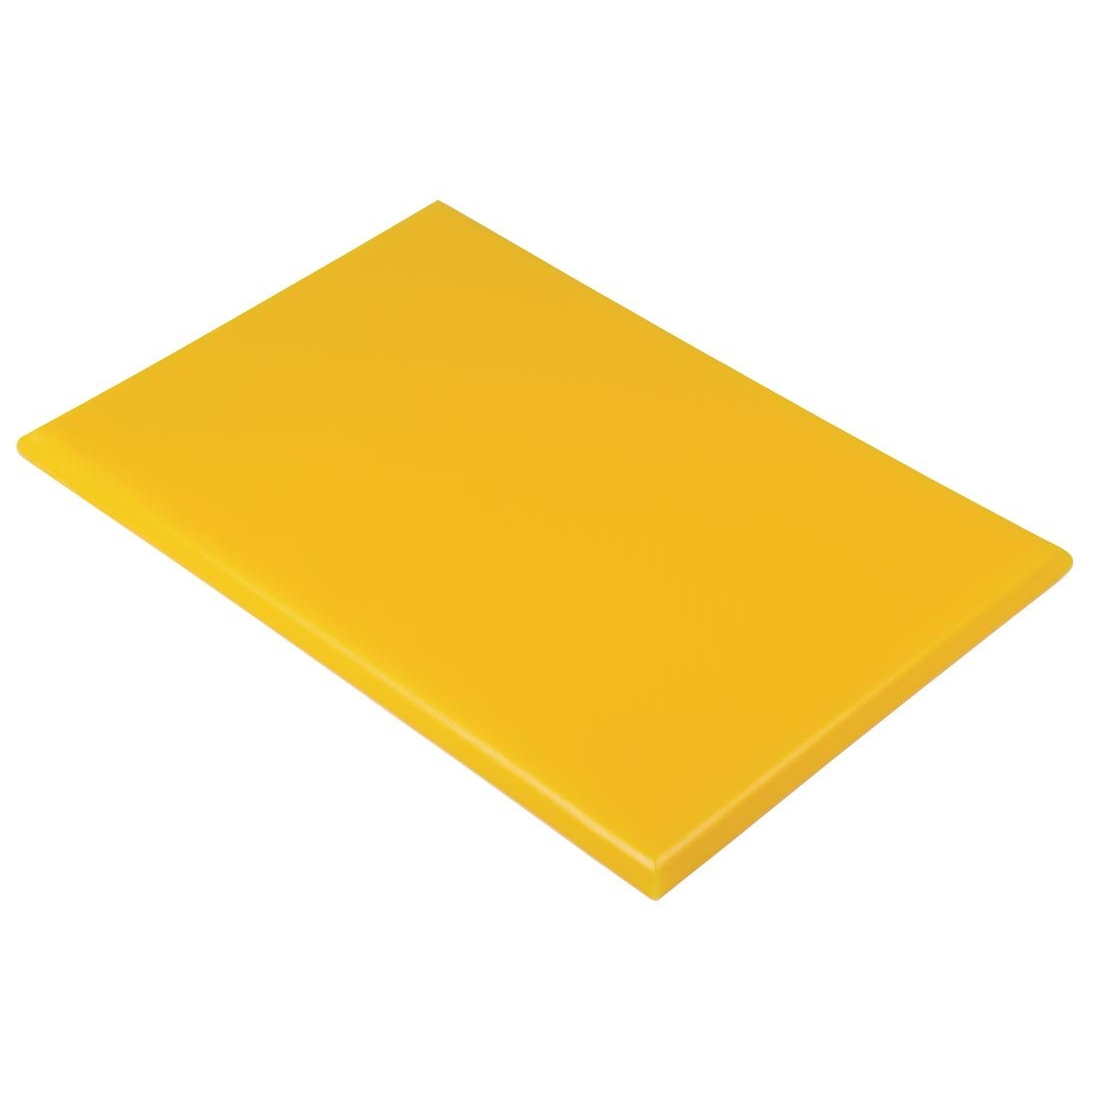 Hygiplas Extra Thick High Density Yellow Chopping Board